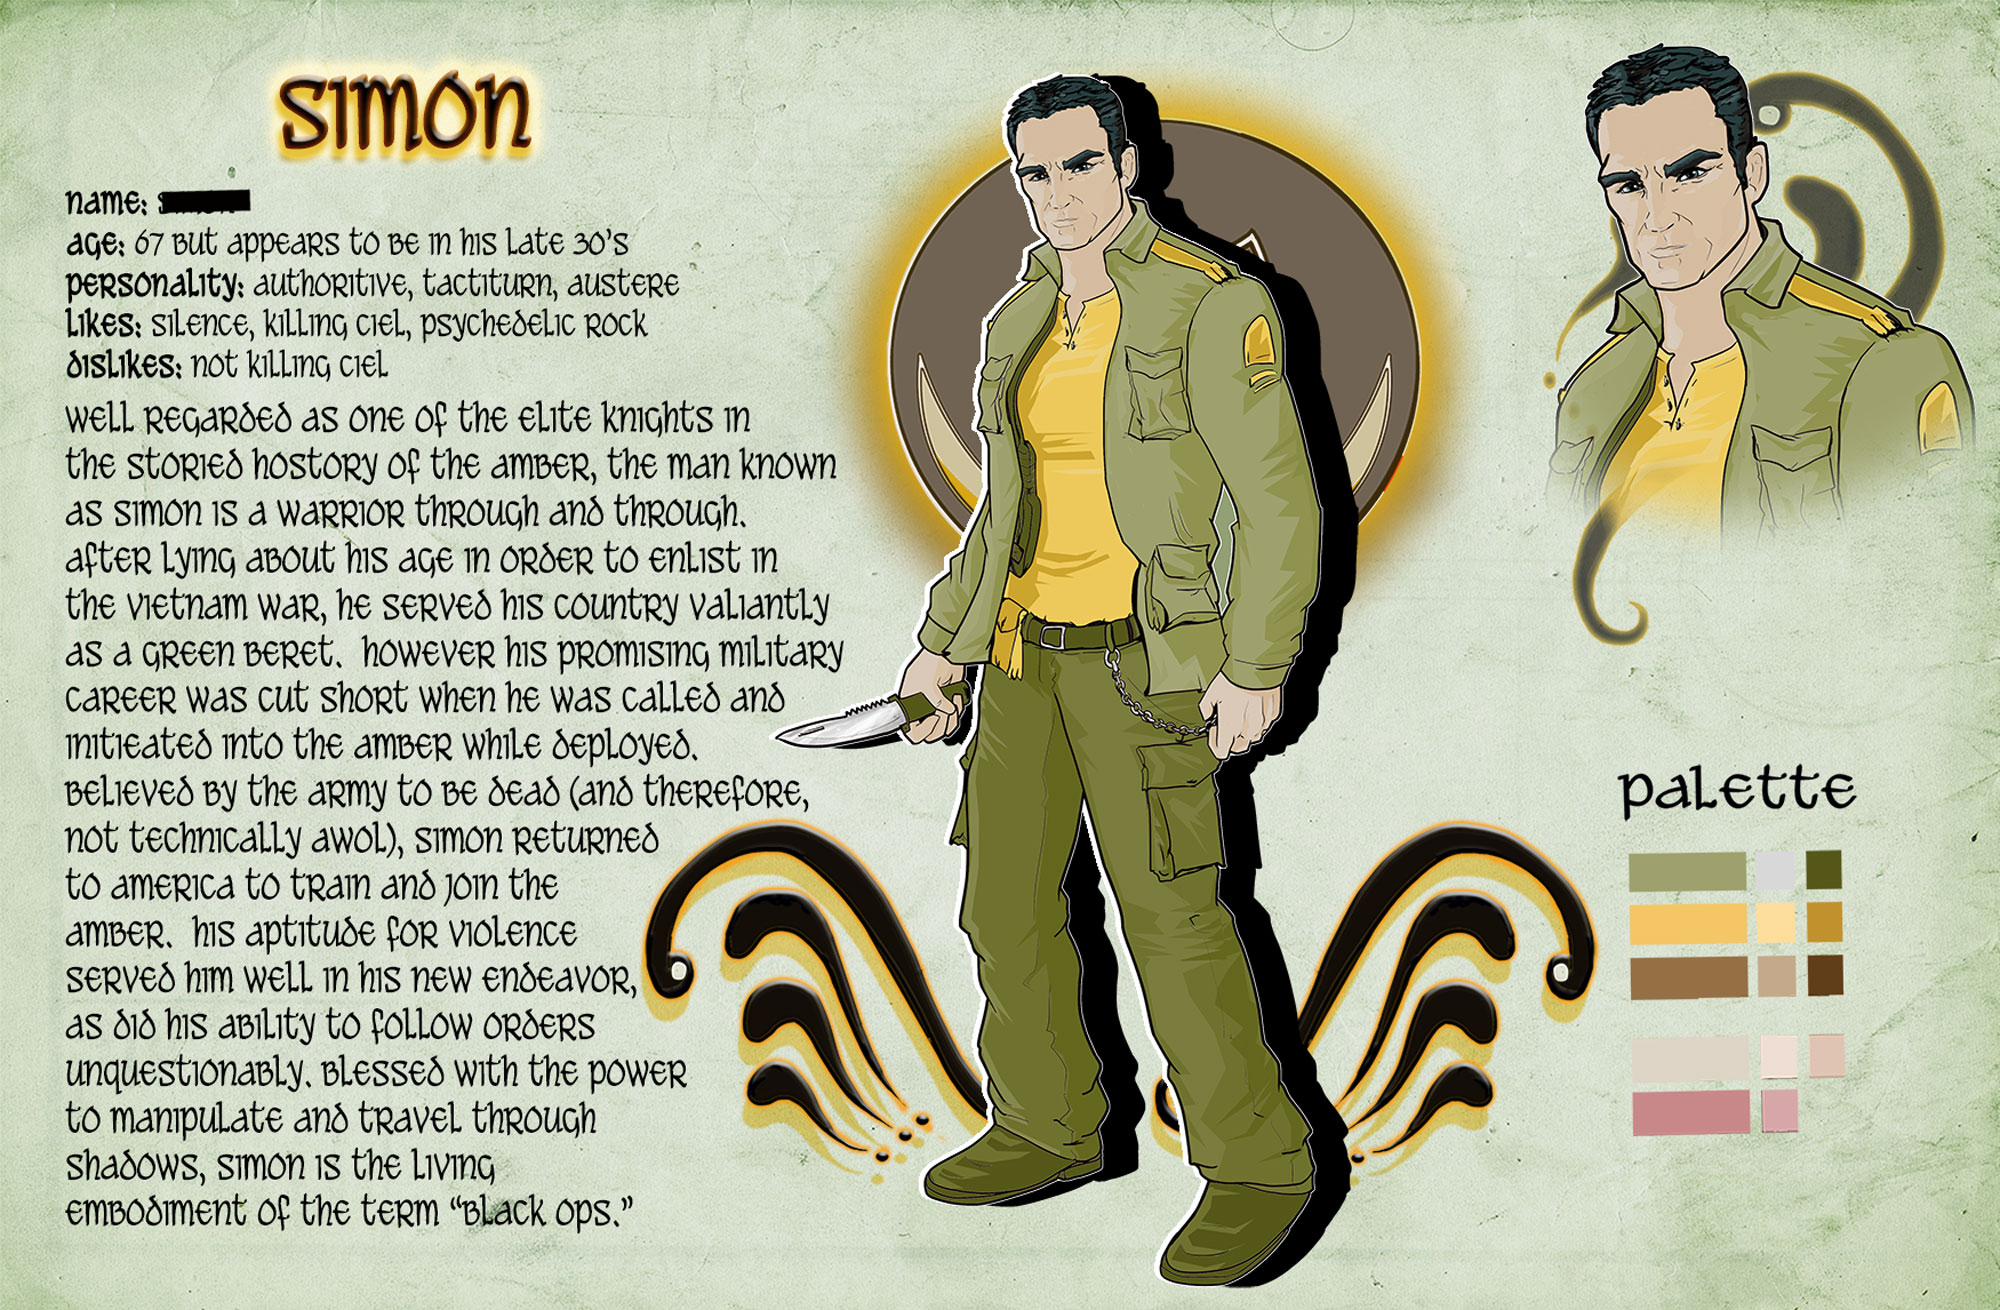 simon-character card